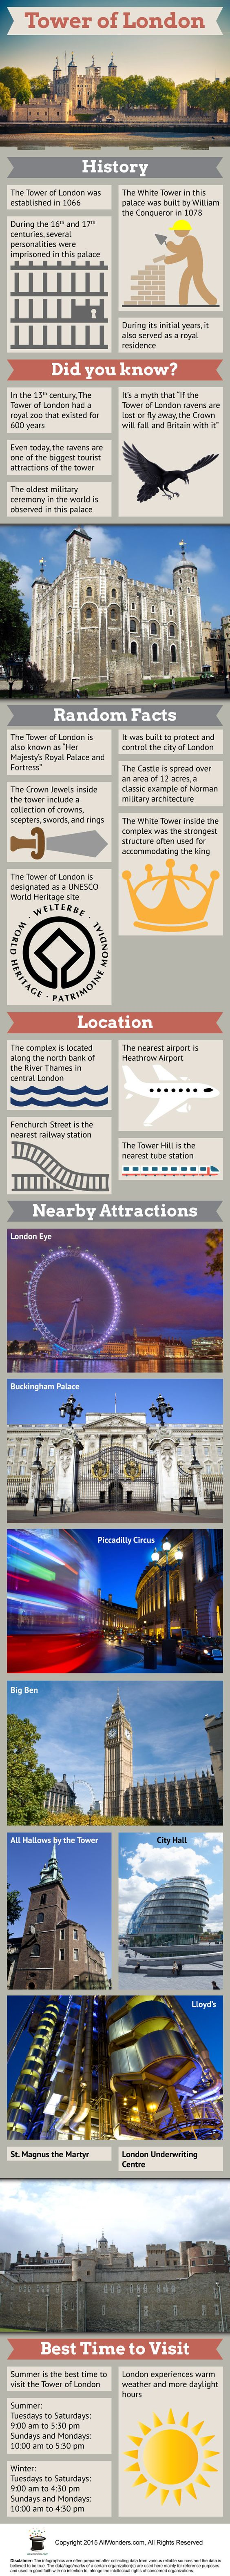 Tower of London Infographic